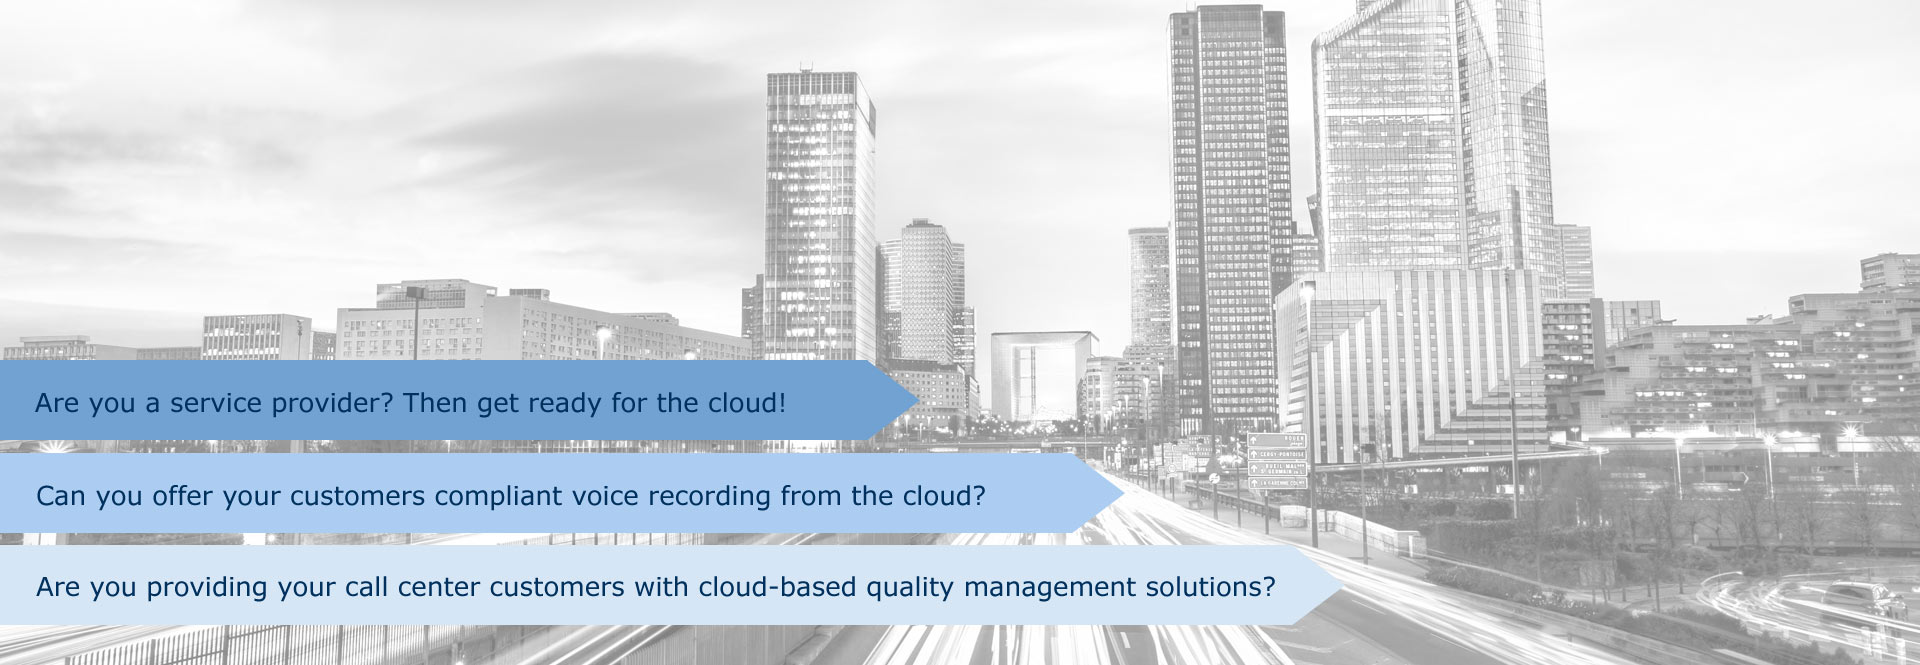 CLOUD COMPUTING - Are you a service provider? Then get ready for the cloud! - Can you offer your customers compliant voice recording from the cloud? - Are you providing your call center customers with cloud-based quality management solutions?